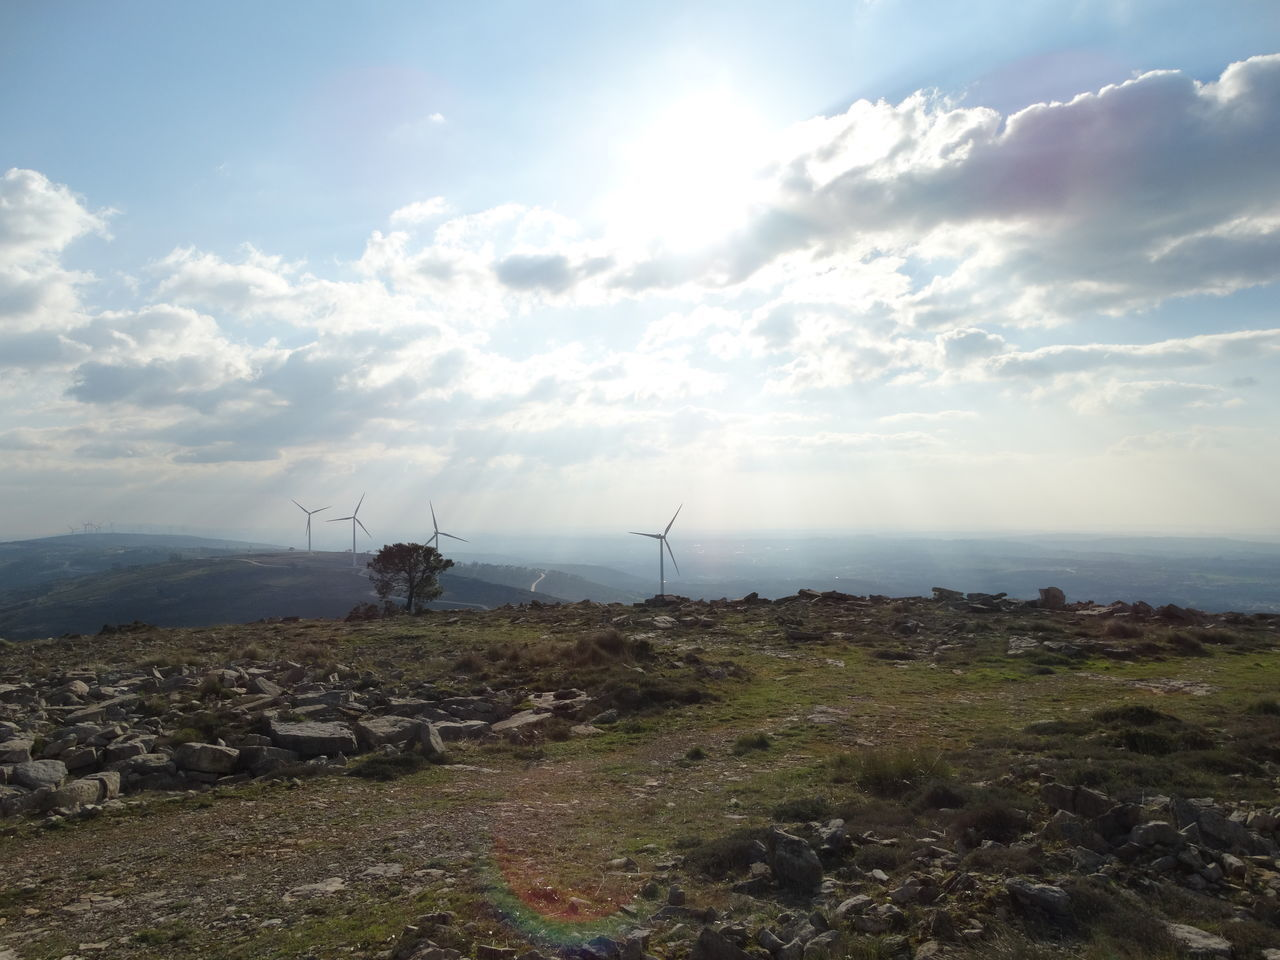 Alternative Energy Beauty In Nature Cloud - Sky Day Industrial Windmill Landscape Nature No People Outdoors Scenics Sky Tranquil Scene Tranquility Wind Power Wind Turbine Windmill